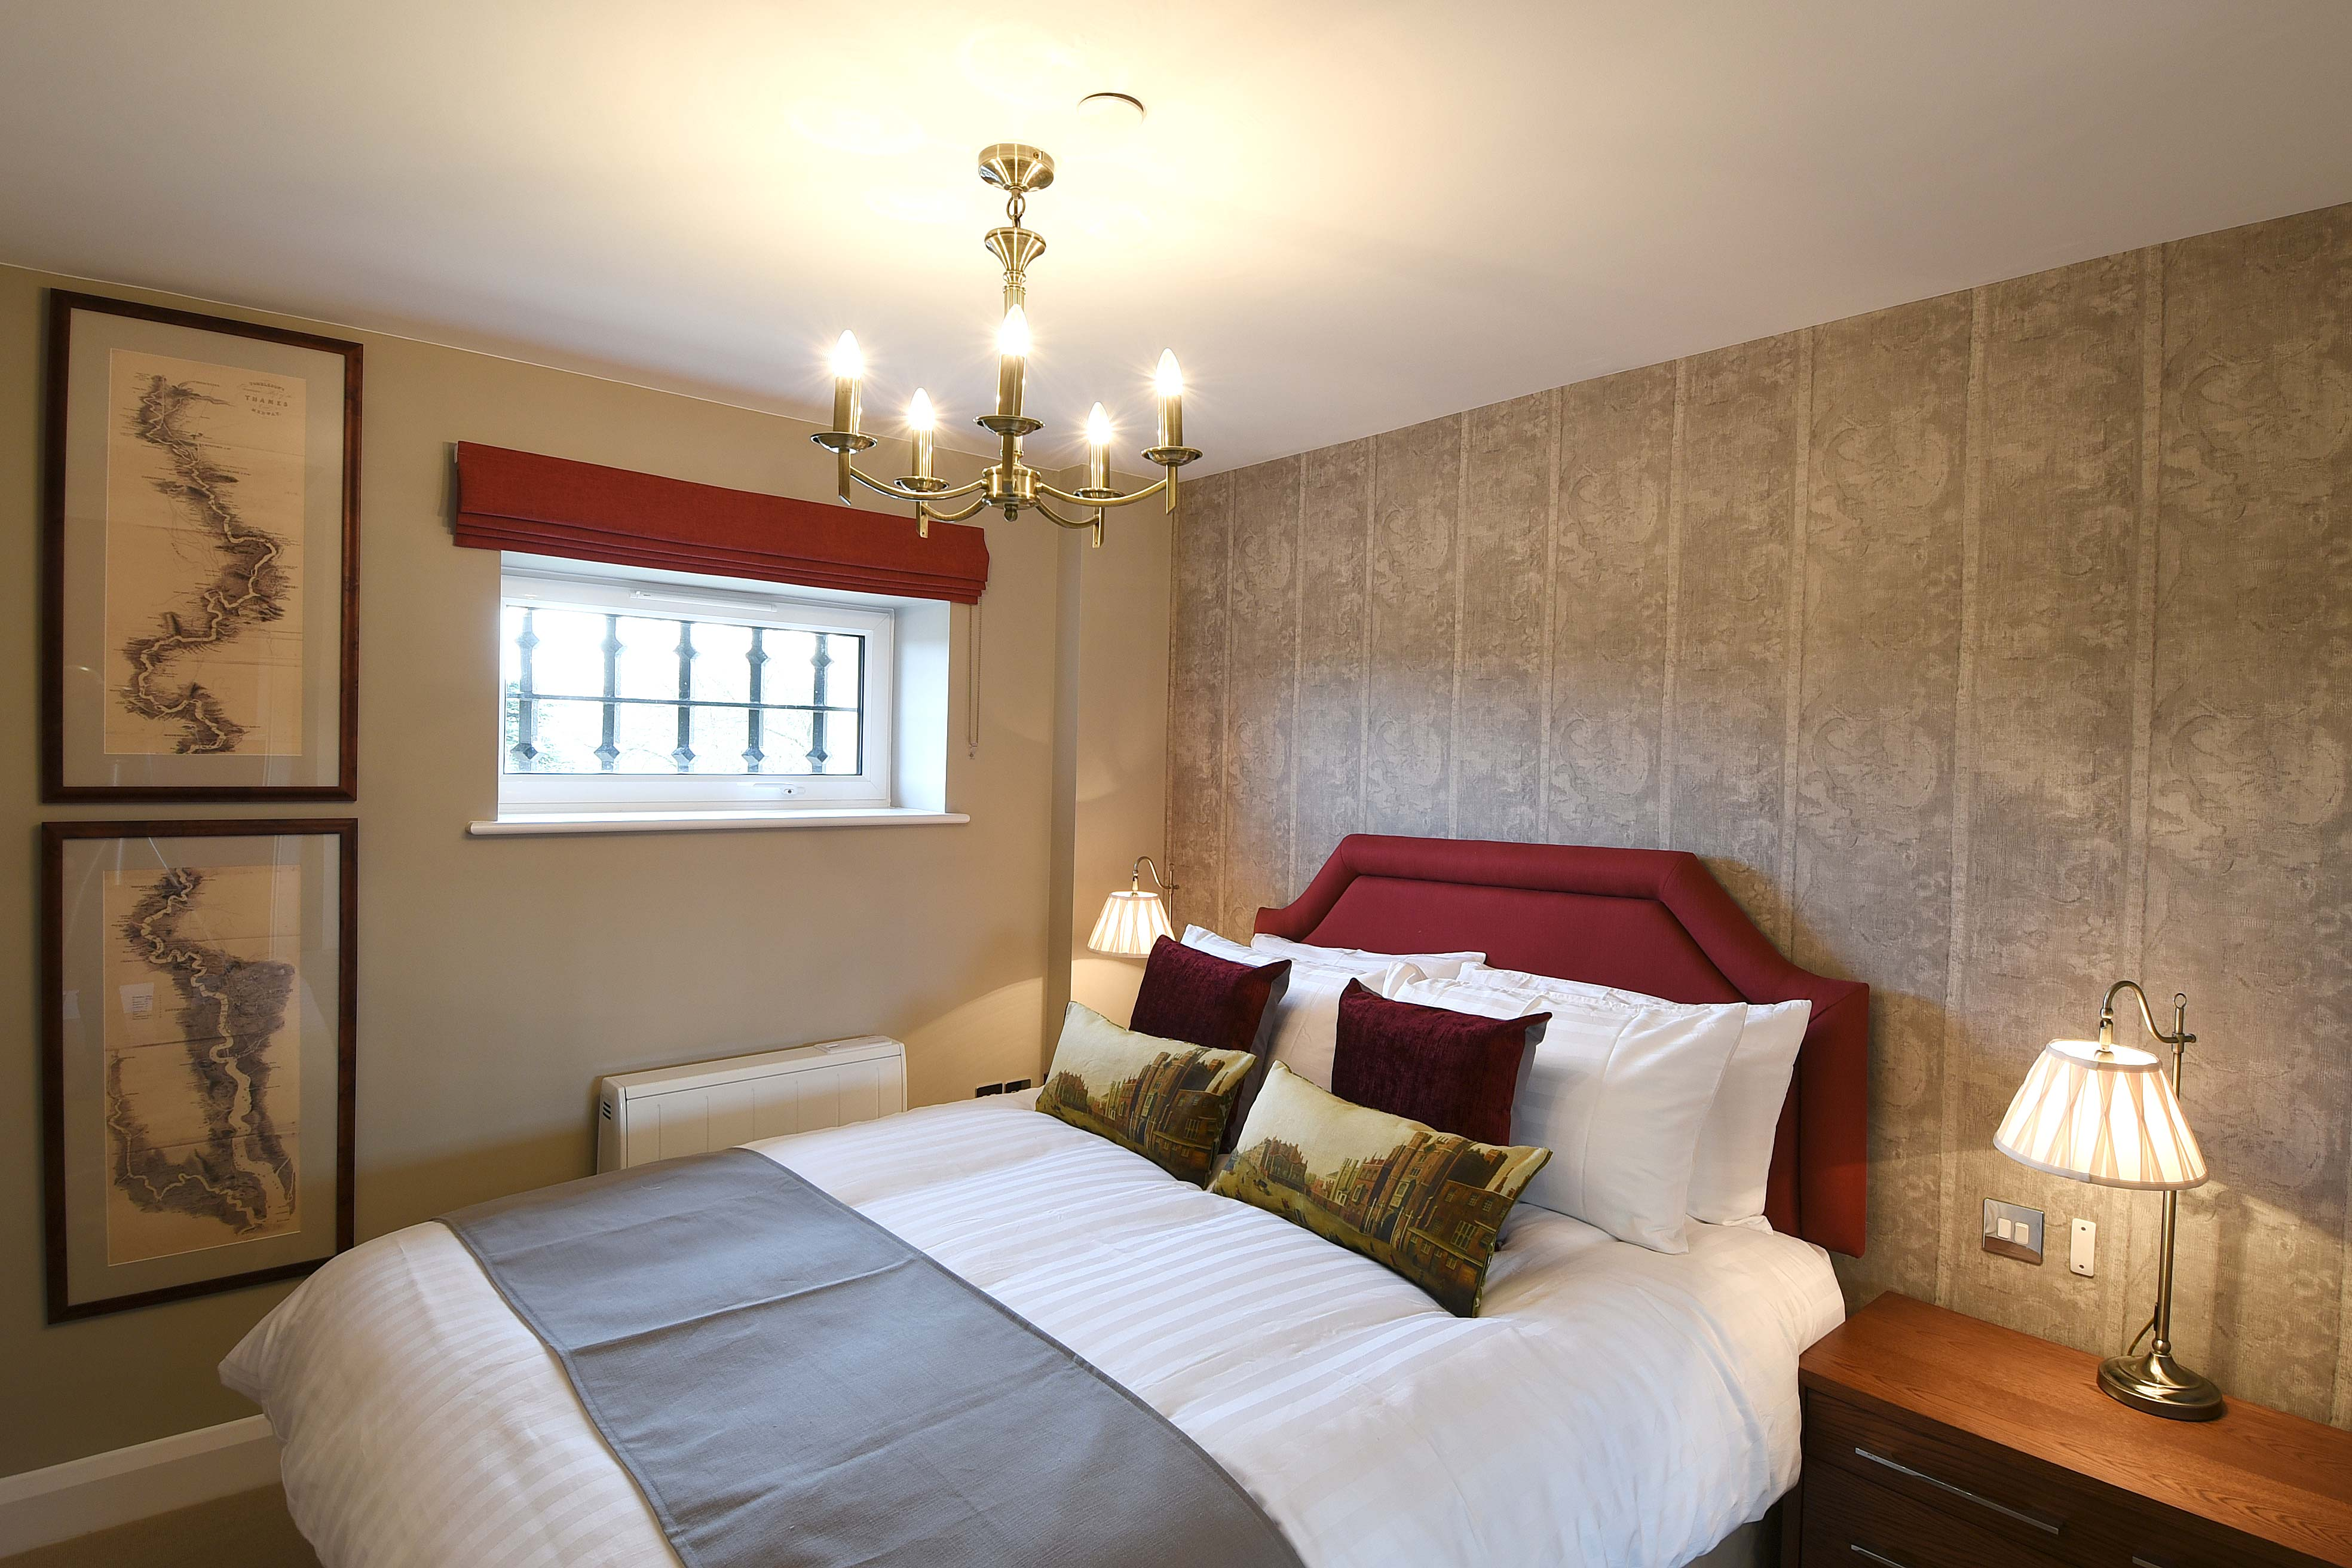 Bedroom in the Tomkins Suite: 1 bedroom luxury riverside serviced apartment at The Old Gaol in Abingdon, near Oxford. Ideal accommodation for corporate or holiday short lets